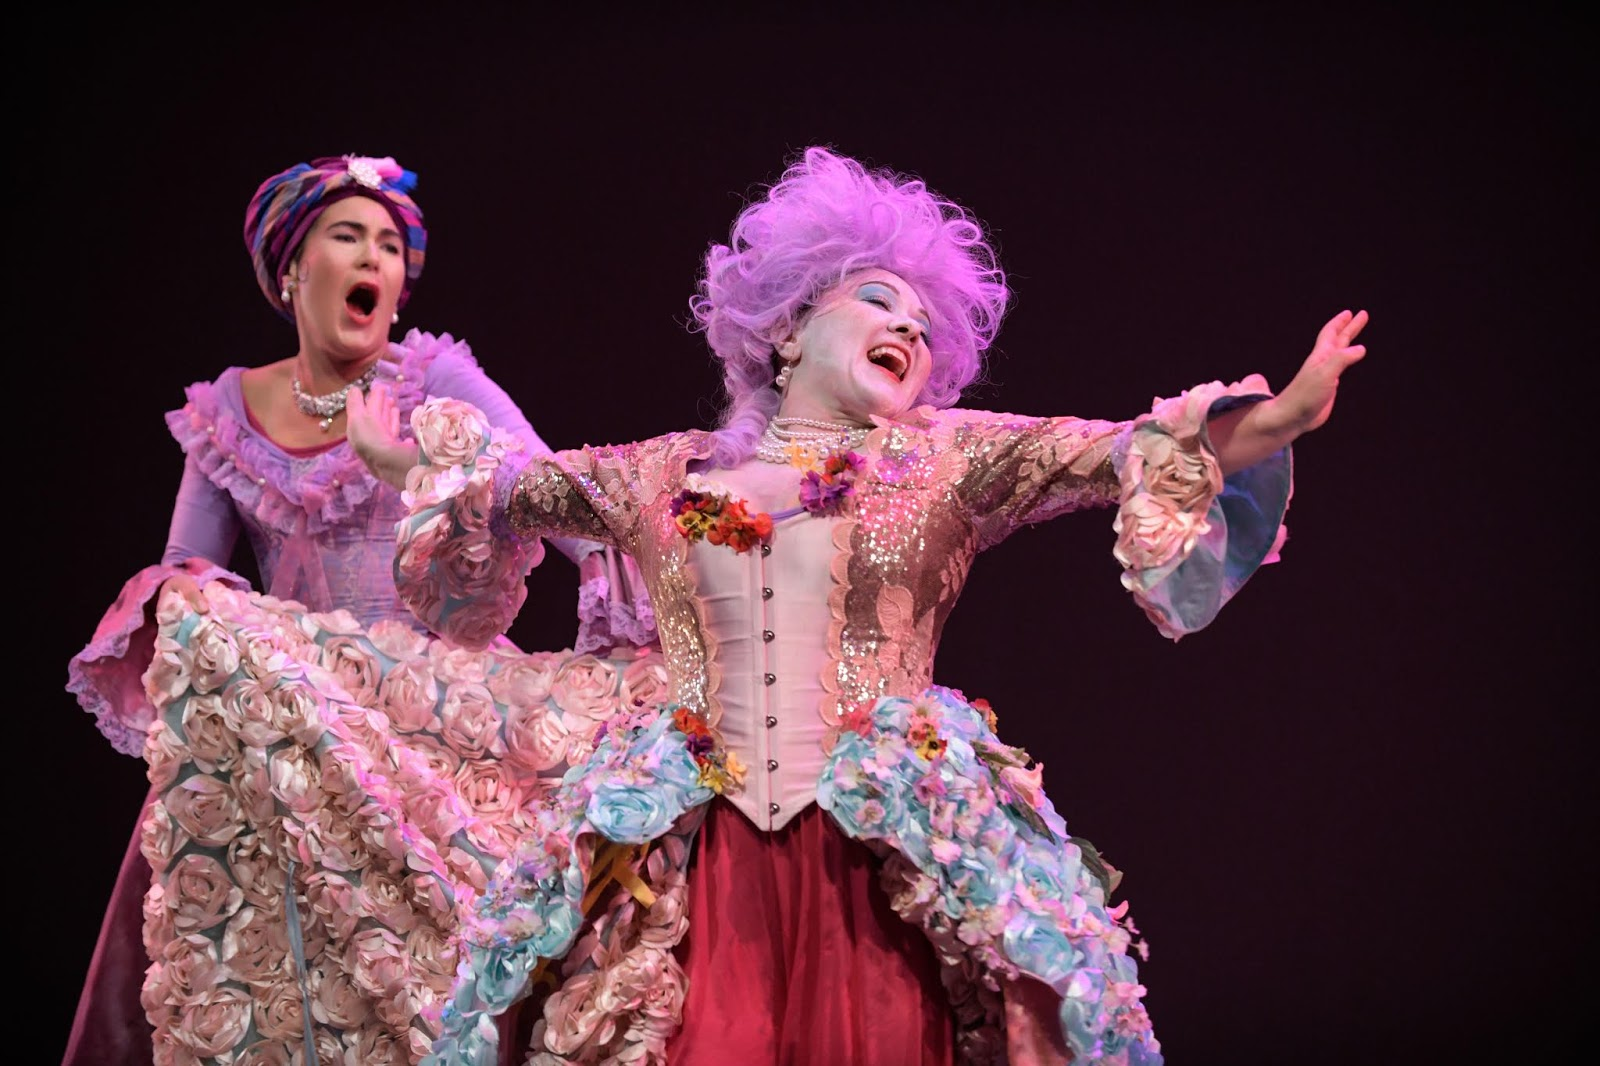 IN REVIEW: mezzo-soprano NIKOLA PRINTZ as Ermelinda (left) and soprano KINDRA SCHARICH as Rosaura (right) in Ars Minerva's November 2019 modern-world-première production of Domenico Freschi's ERMELINDA [Photograph by Teresa Tam, © by Ars Minerva]